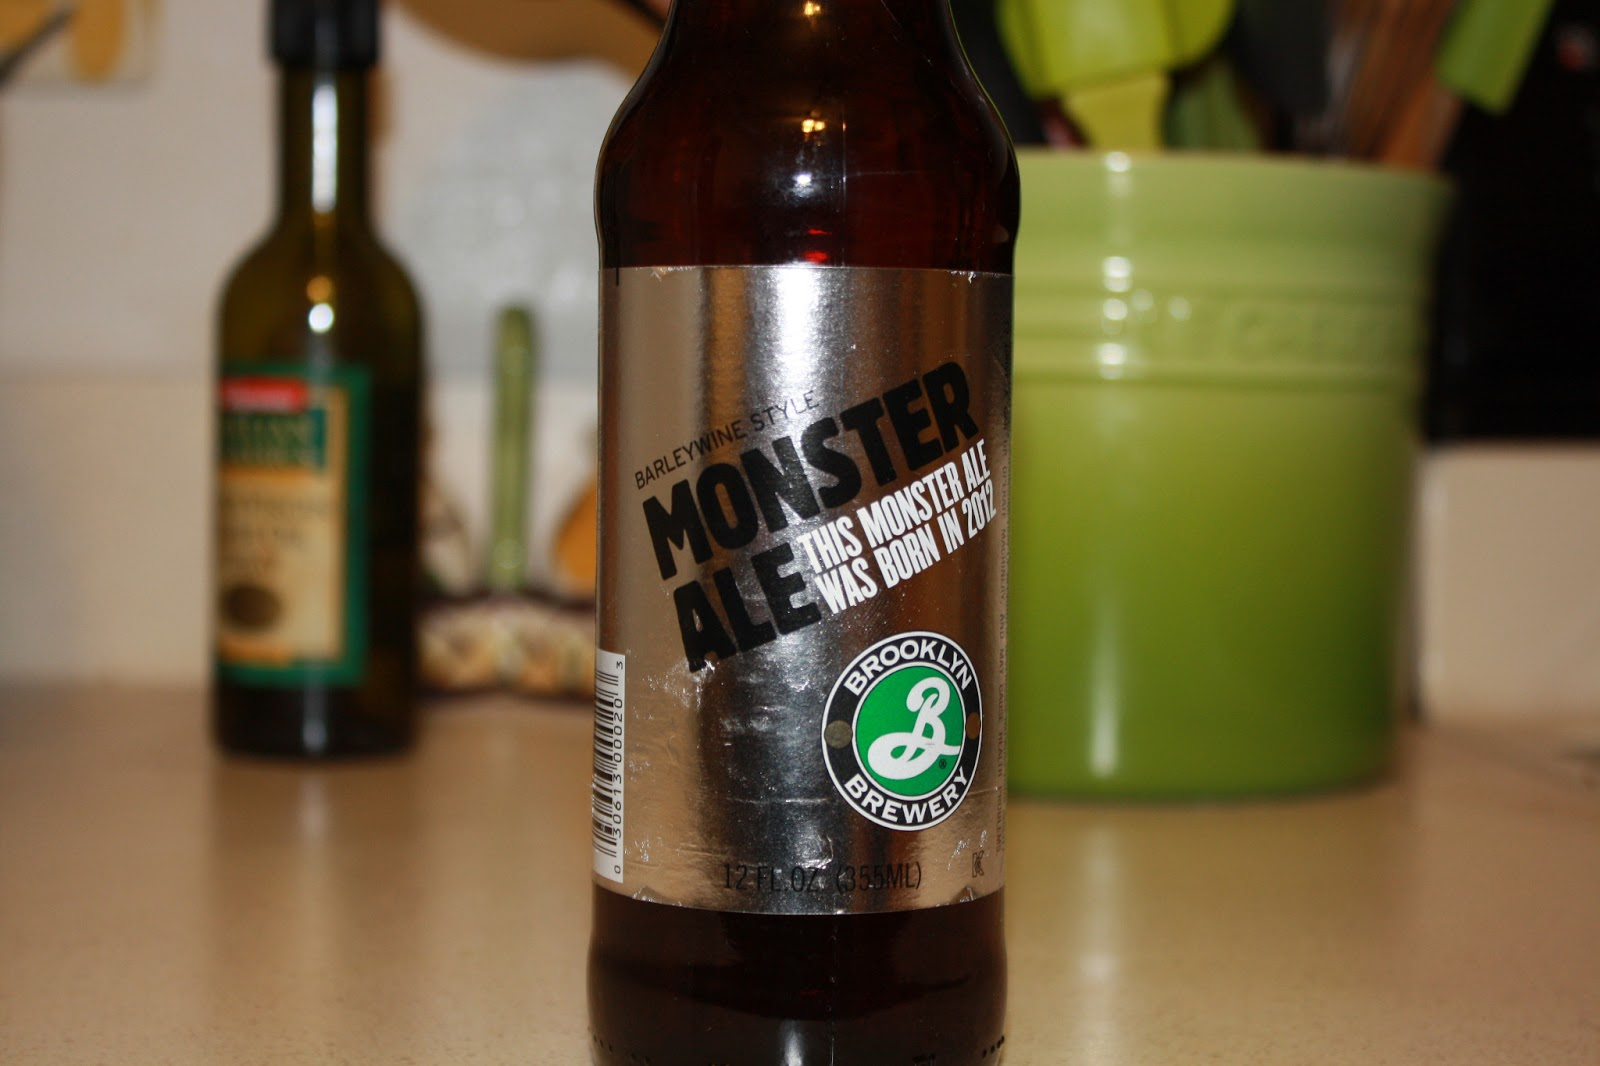 Brooklyn Brewery Monster Barleywine Style Ale